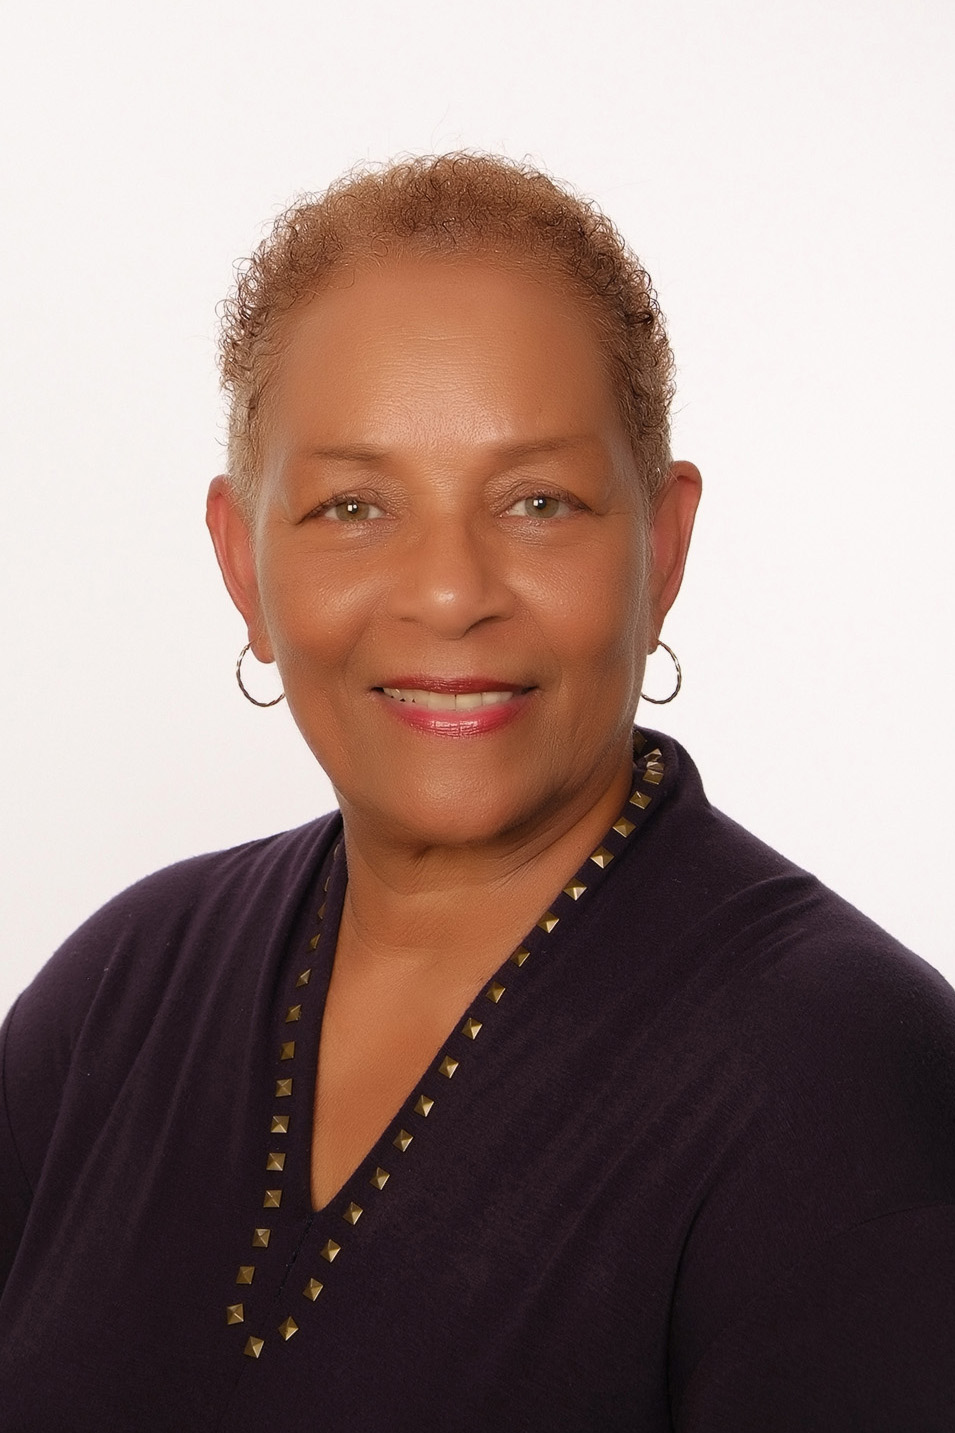 DARLENE LIVINGSTON Broadcast Representative    Darlene Livingston  is a veteran journalist at the Bermuda Broadcasting Company. She currently does the morning news anchor radio, but she received her start in the mid-1970s on both TV and radio for the company. She worked her way up to television programming manager and news director.  From 1989 to 1999 she represented the Bermuda Department of Tourism in Chicago as assistant sales manager. Her territory included all mid-western cities in spreading Bermuda Tourism's message to US travel agents.  Ms. Livingston is also the owner and proprietor of R.M. Roberts Candy Wholesale which imports US and European candy to Bermuda.